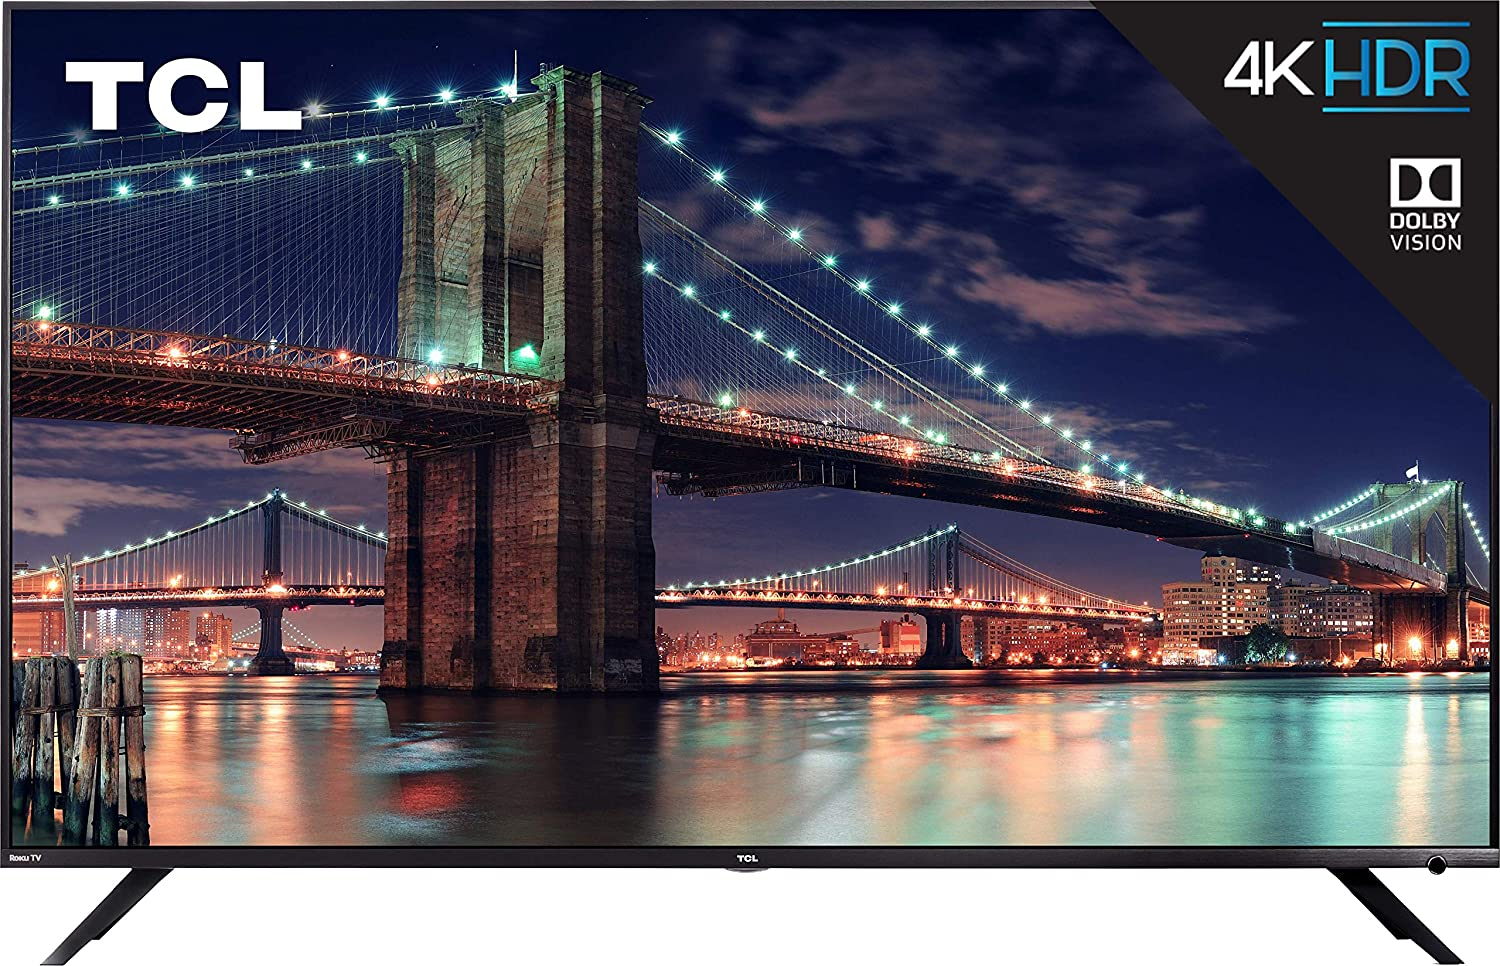 Top 5 Best 4k hdr tv for gaming under 500 in 2020 7